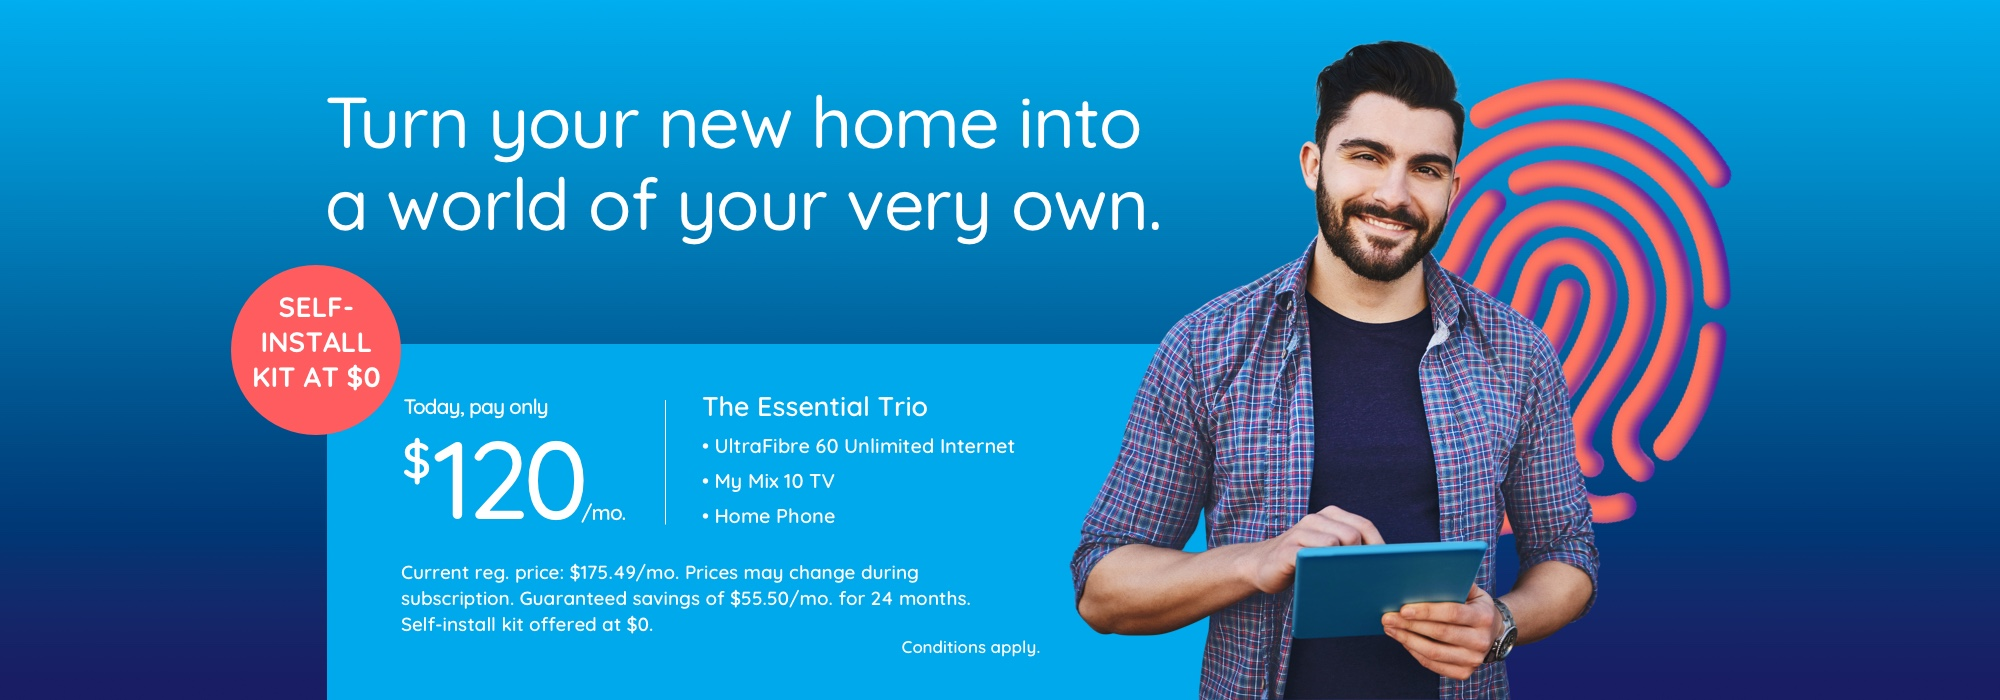 Turn your new home into a world of your very own. Self-install kit offered at $0. Today, pay only $120/mo.  The Essential Trio UltraFibre 60 Unlimited Internet My Mix 10 TV with 4K PVR Home Phone  Current reg. price:  $175.49/mo. Prices may change during subscription. Guaranteed savings of $55.50/mo. for 24 months  Conditions apply.